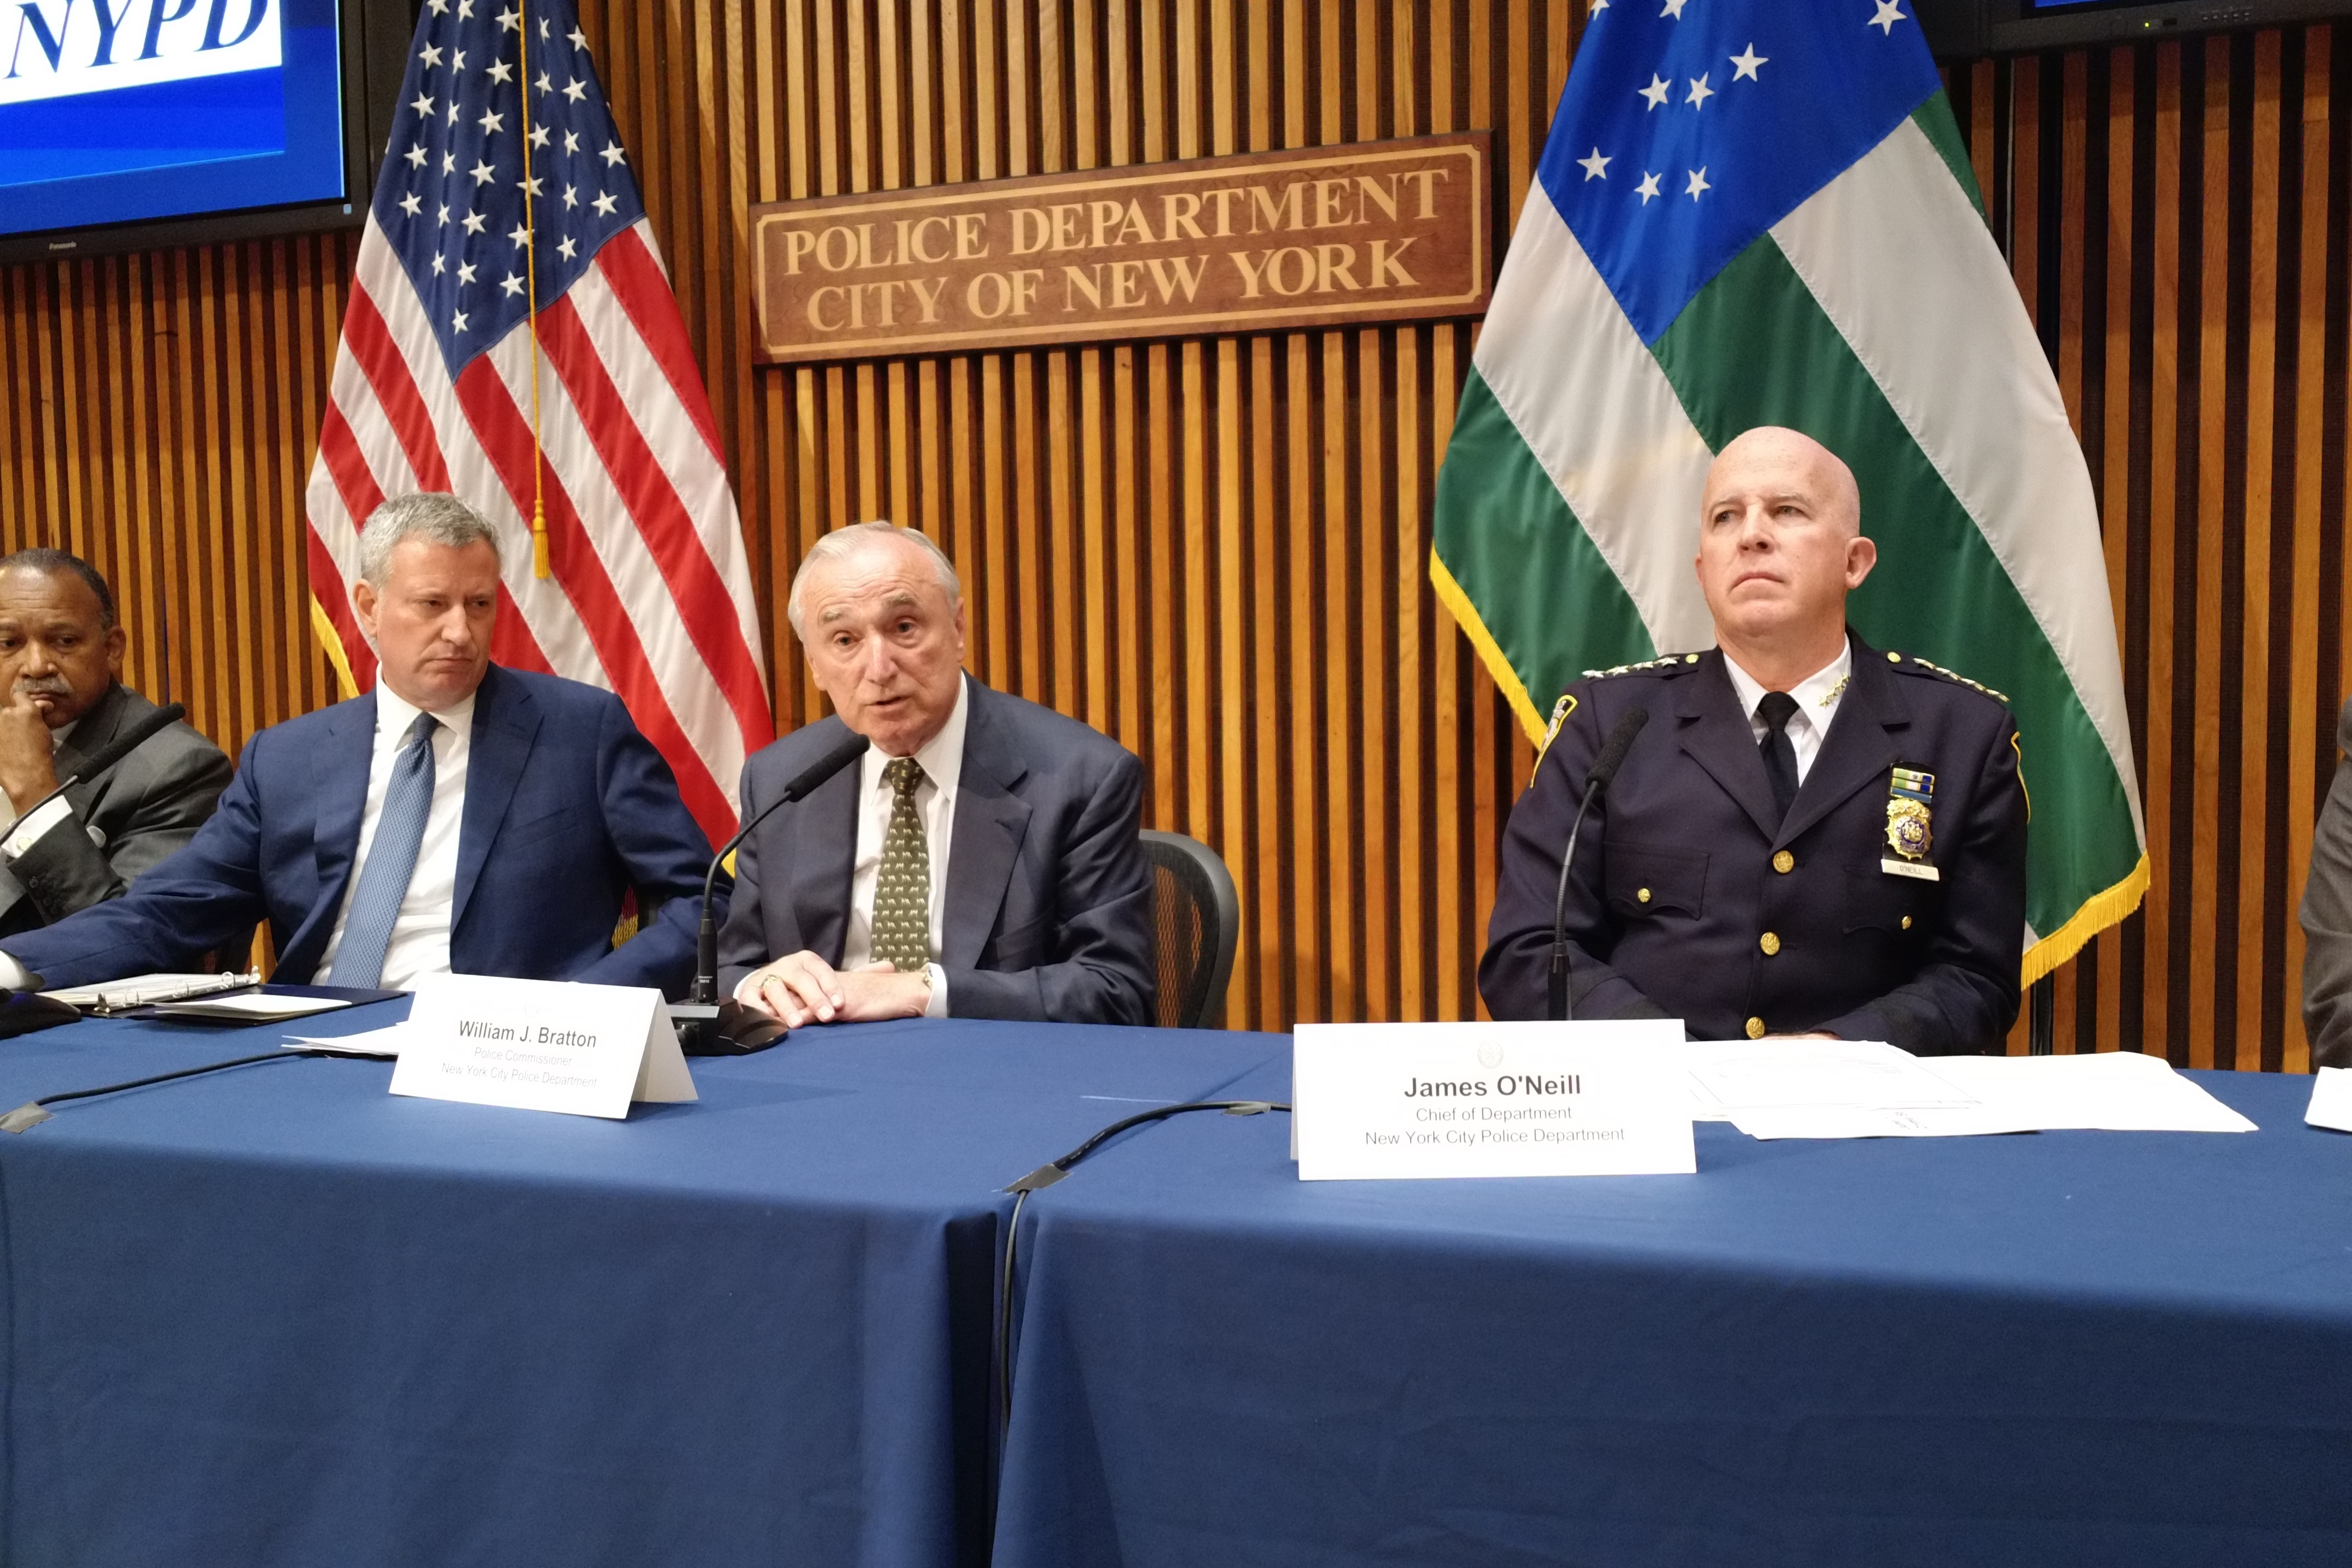 Mayor Bill de Blasio, Police Commissioner Bill Bratton and Chief of Department James O'Neill at today's crime stats press conference.